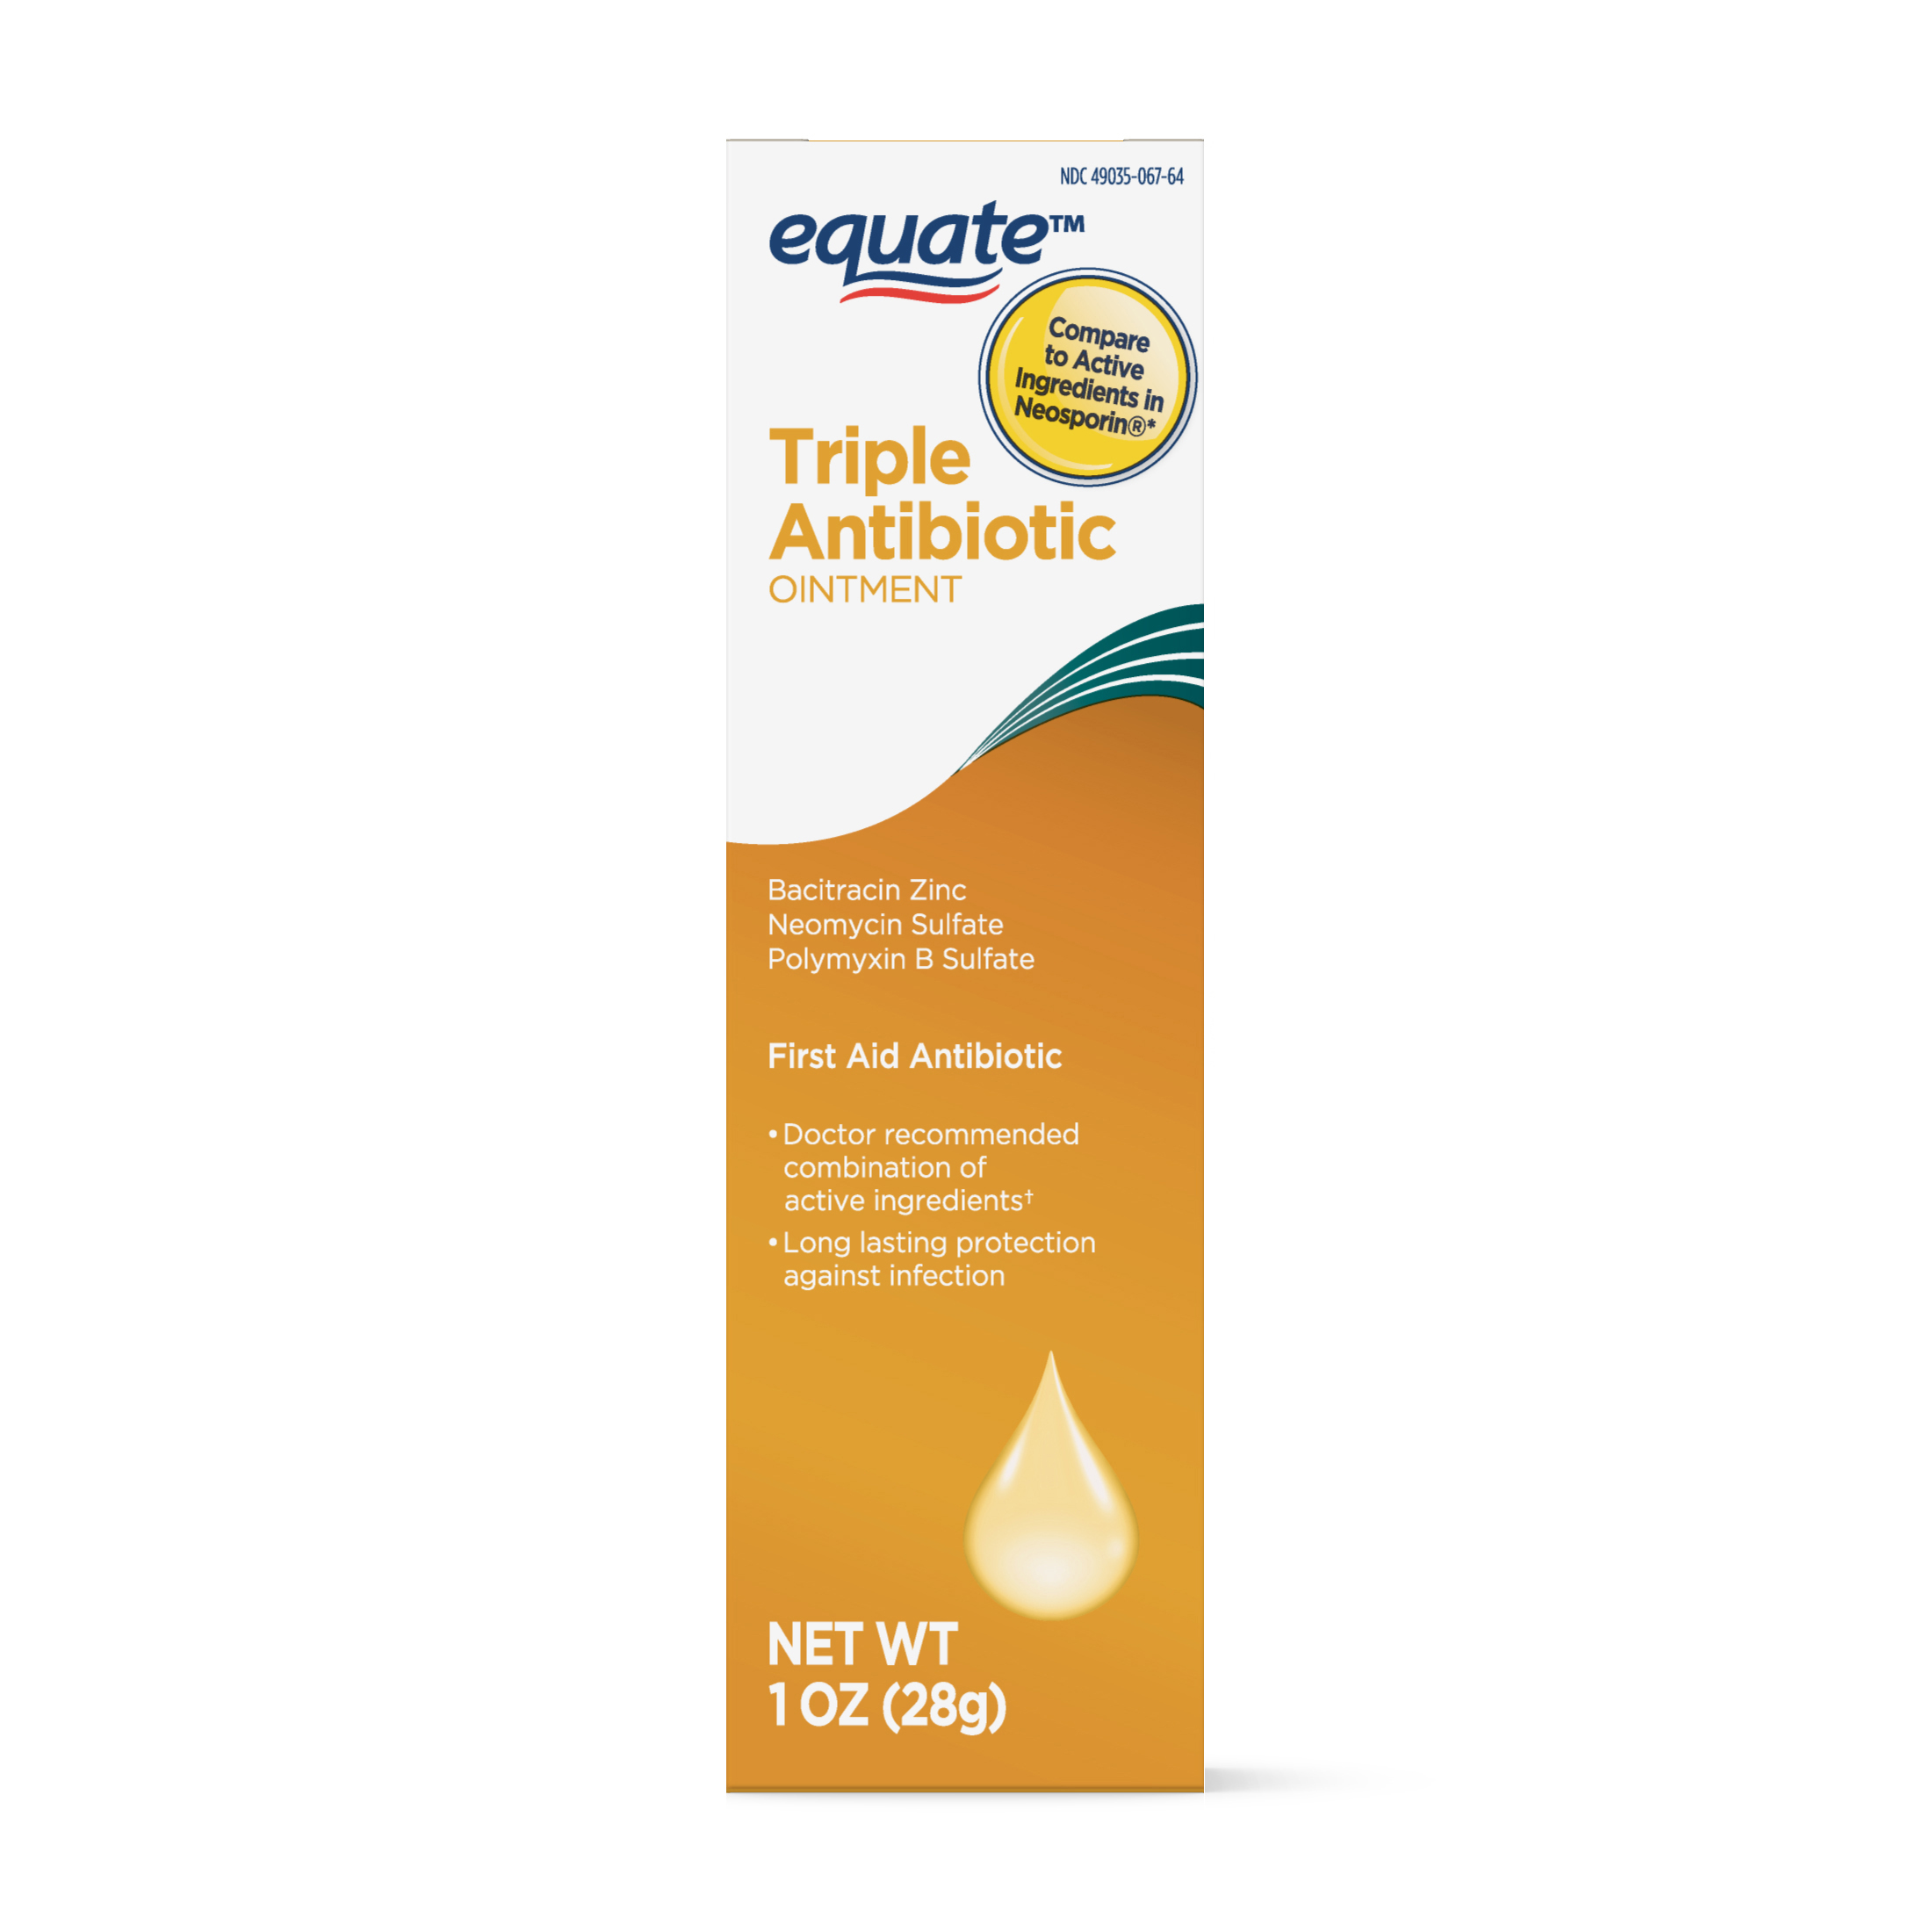 Equate First Aid Triple Antibiotic Ointment, 1 Oz